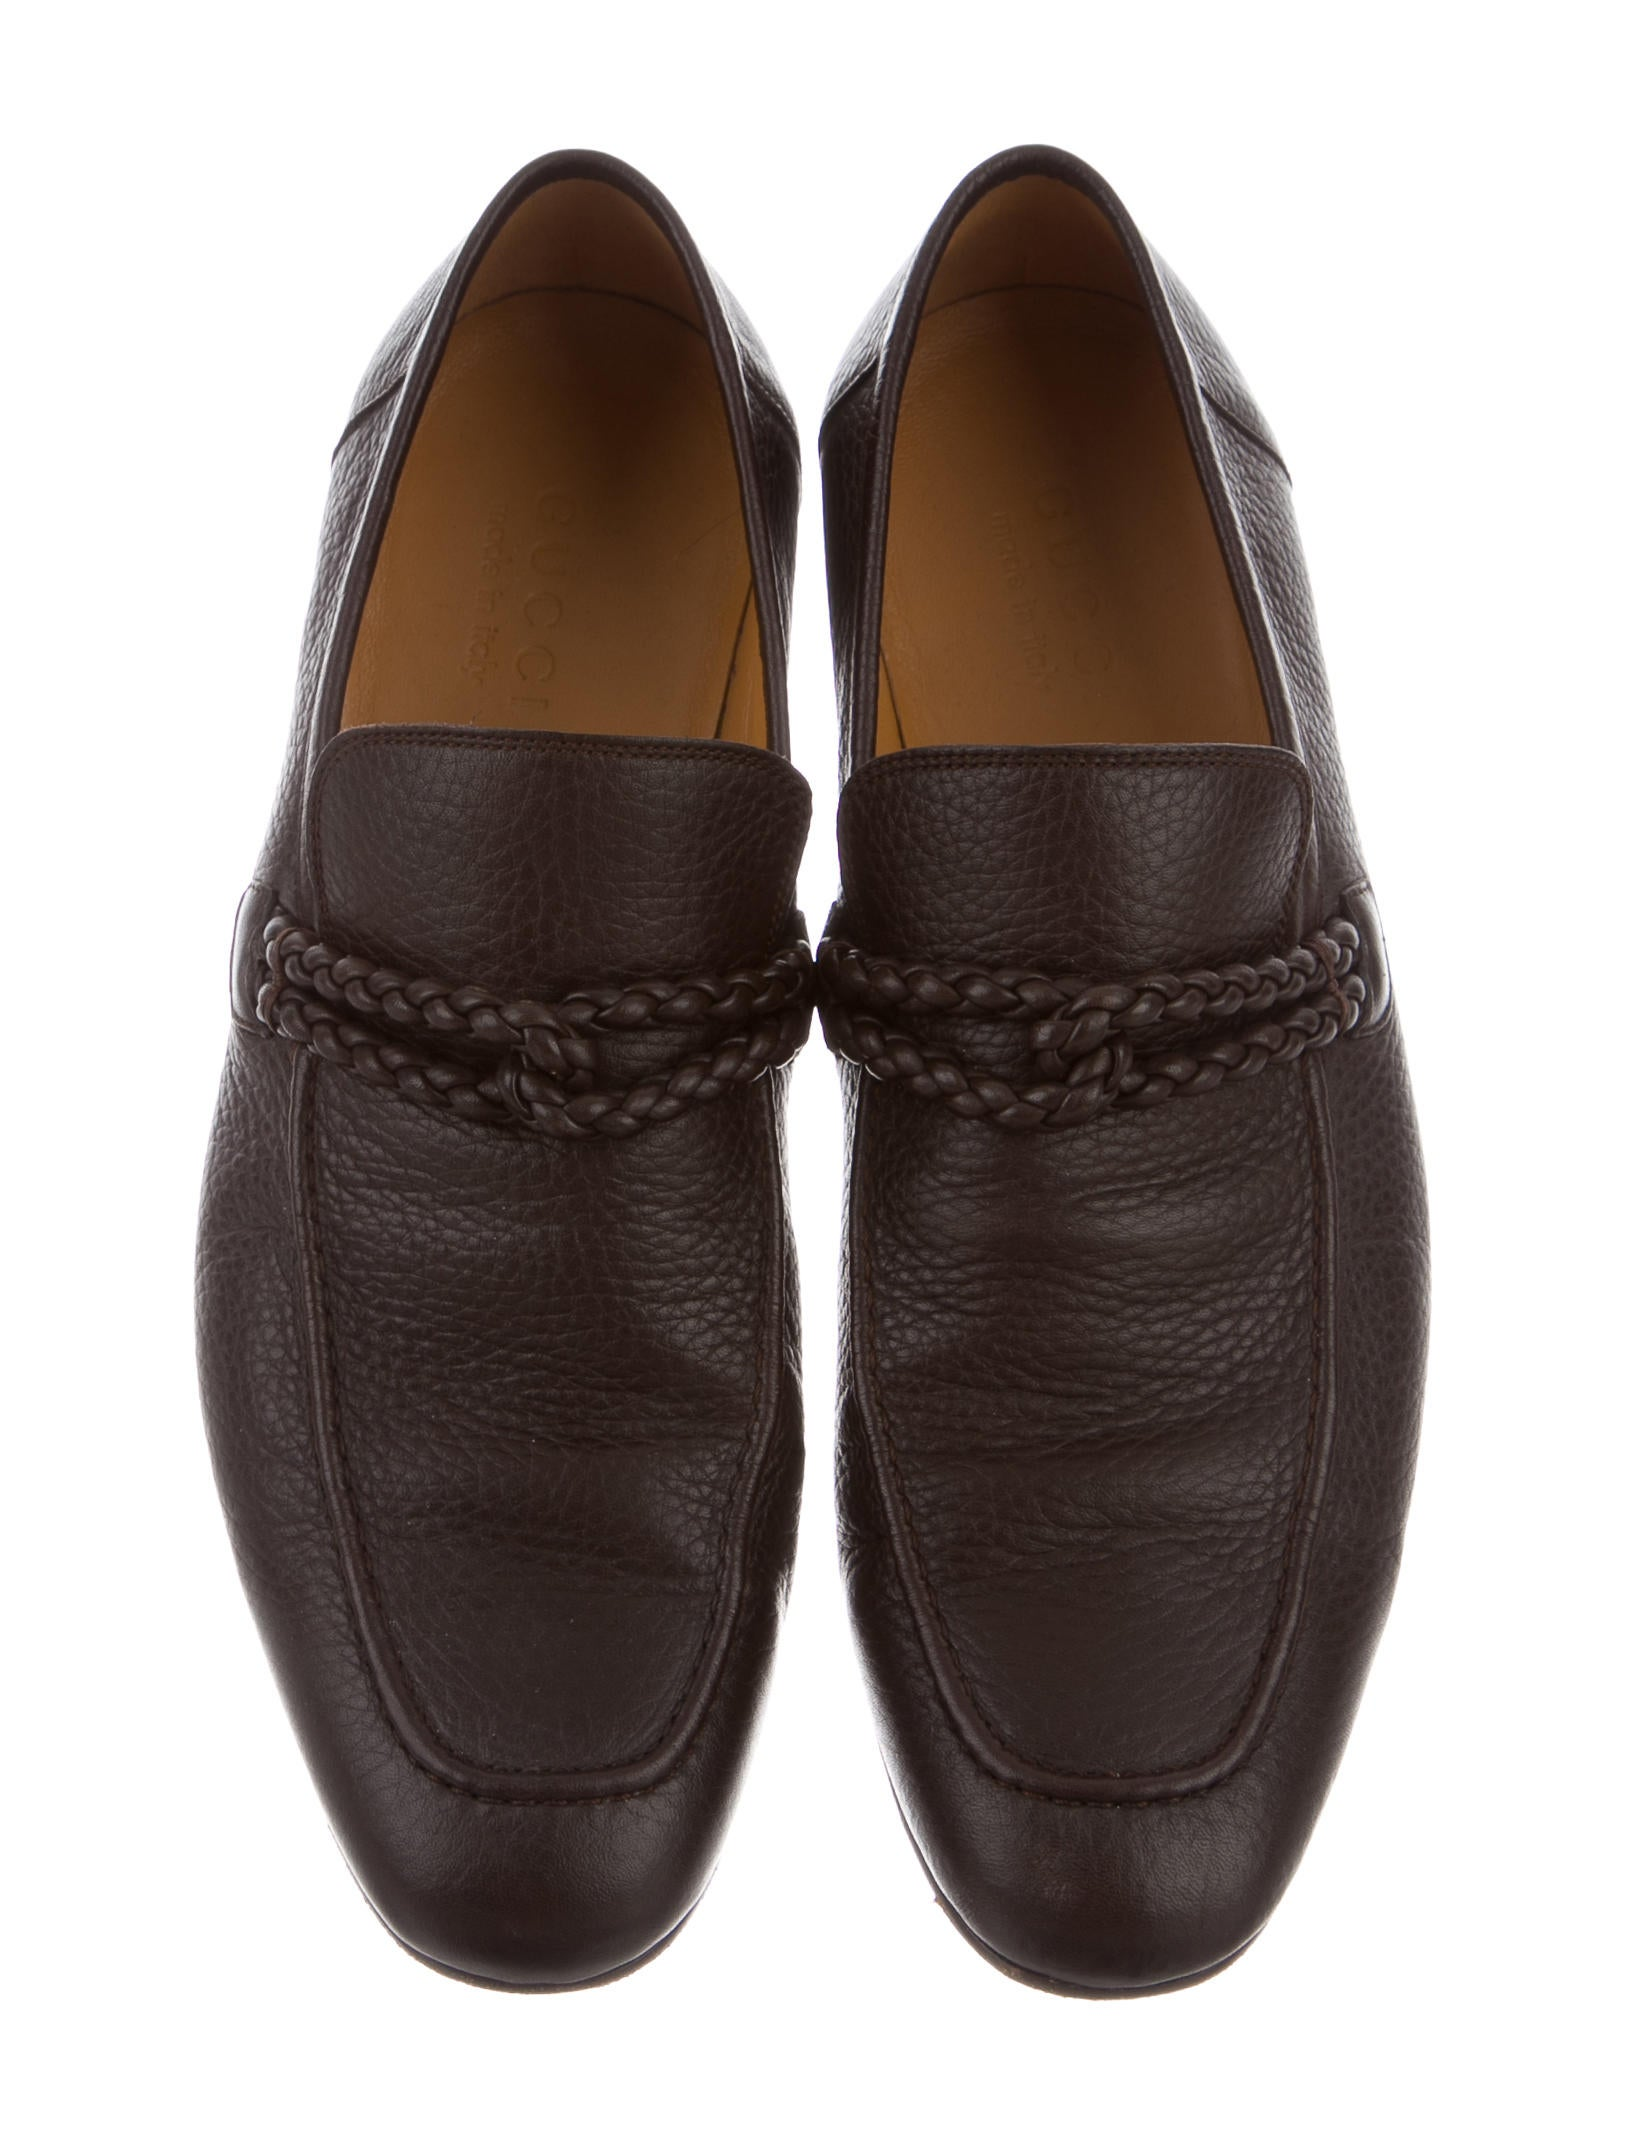 gucci braided leather loafers shoes guc135266 the